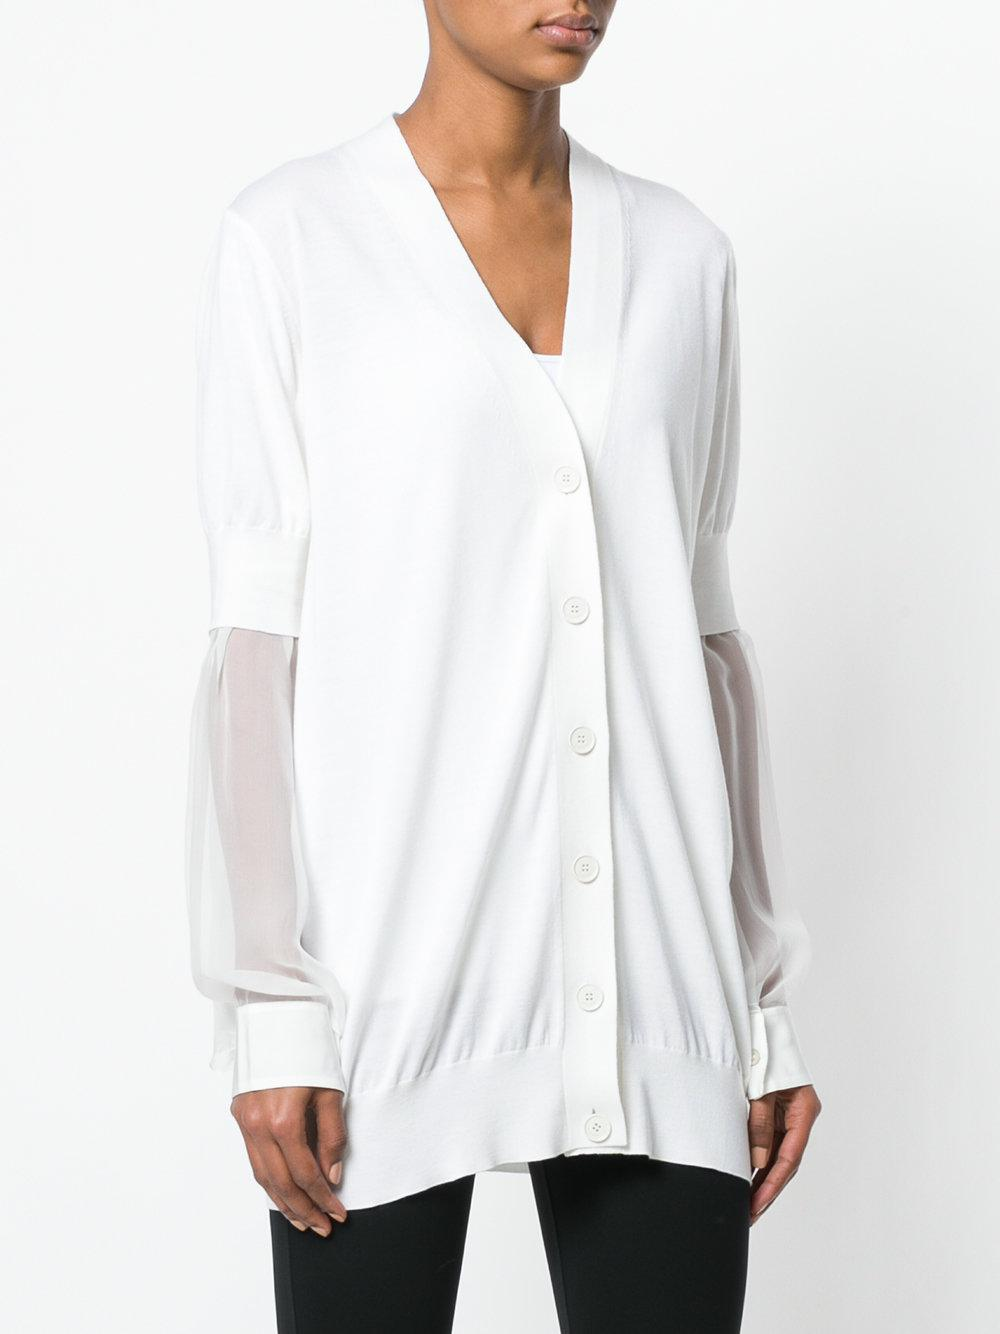 2037ba6a4 Lyst - Givenchy Sheer-sleeves Cardigan in White